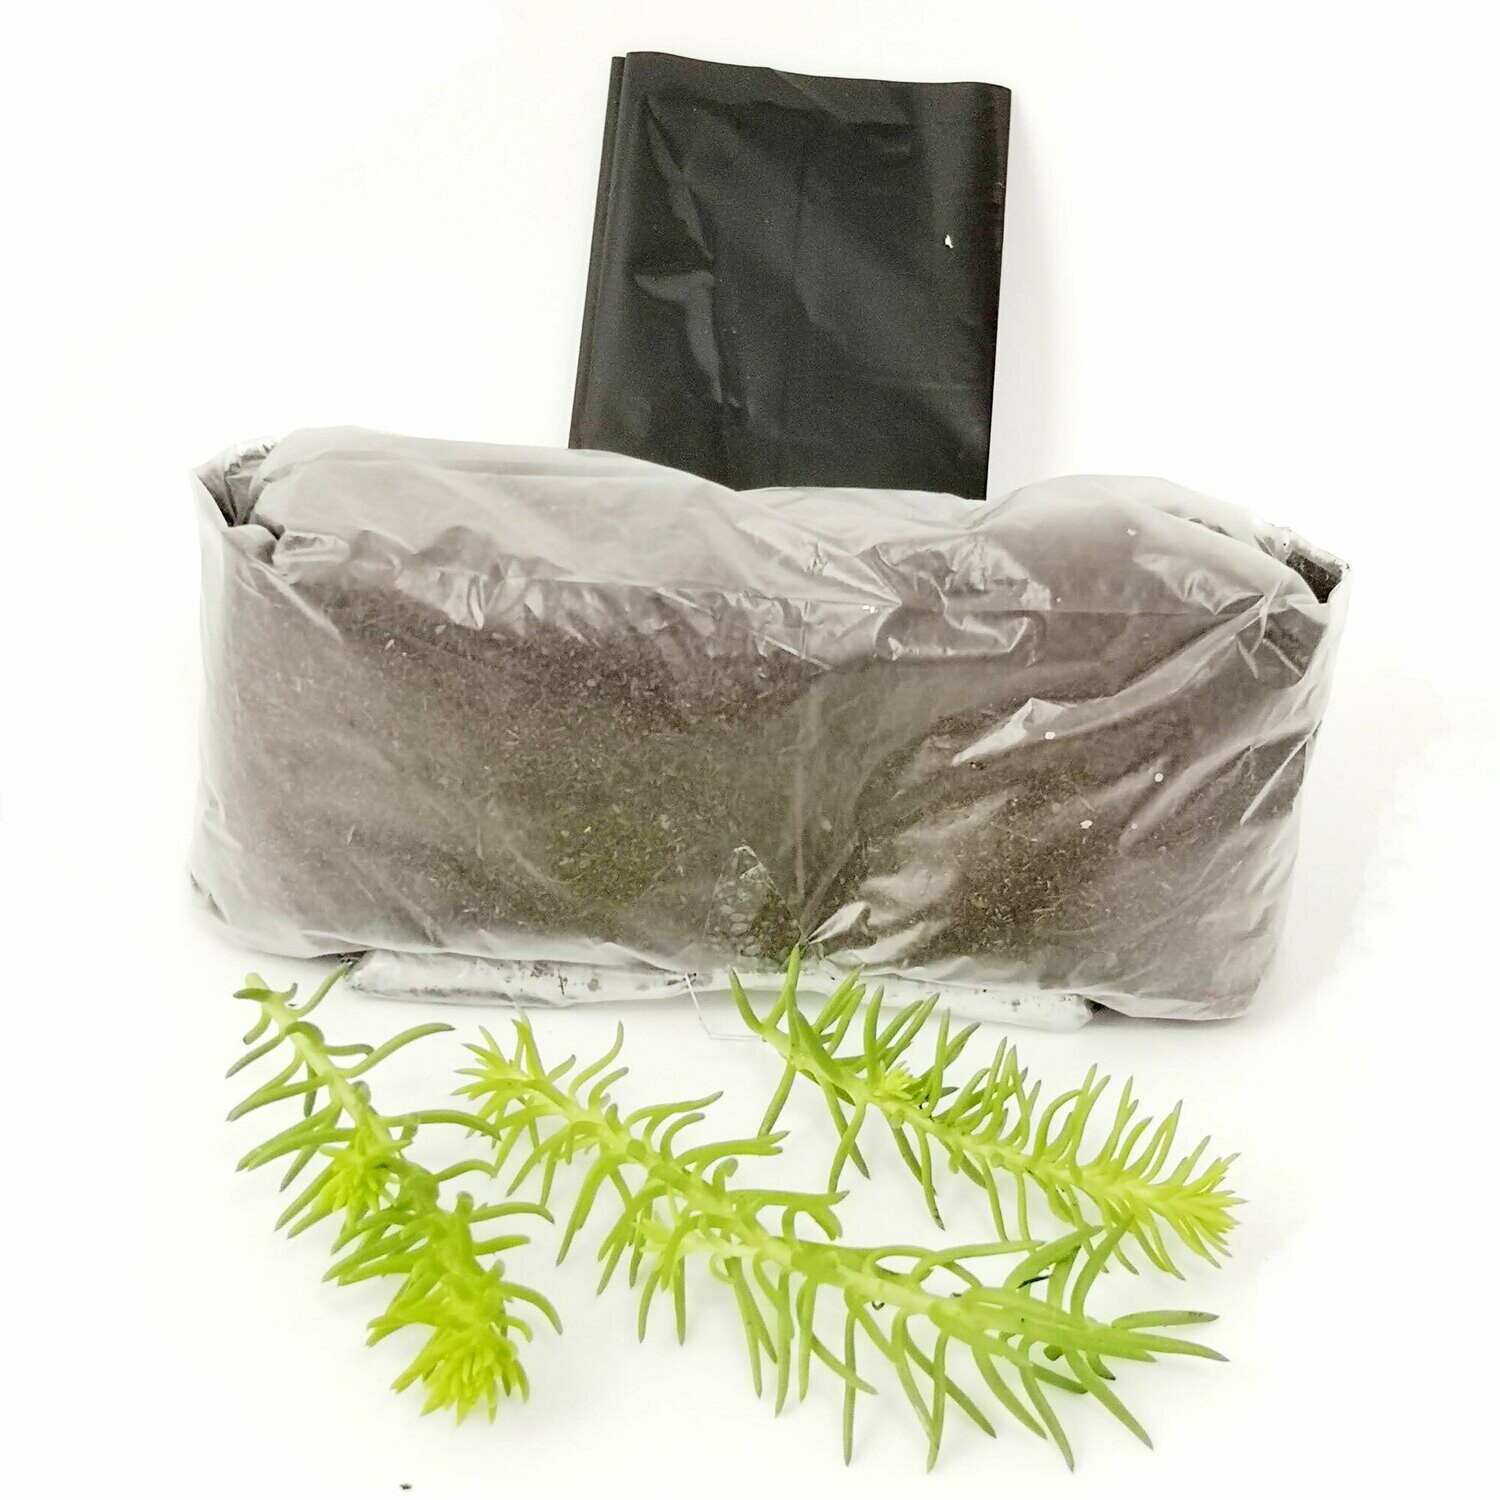 Angelina Plant Cutting - growing kit